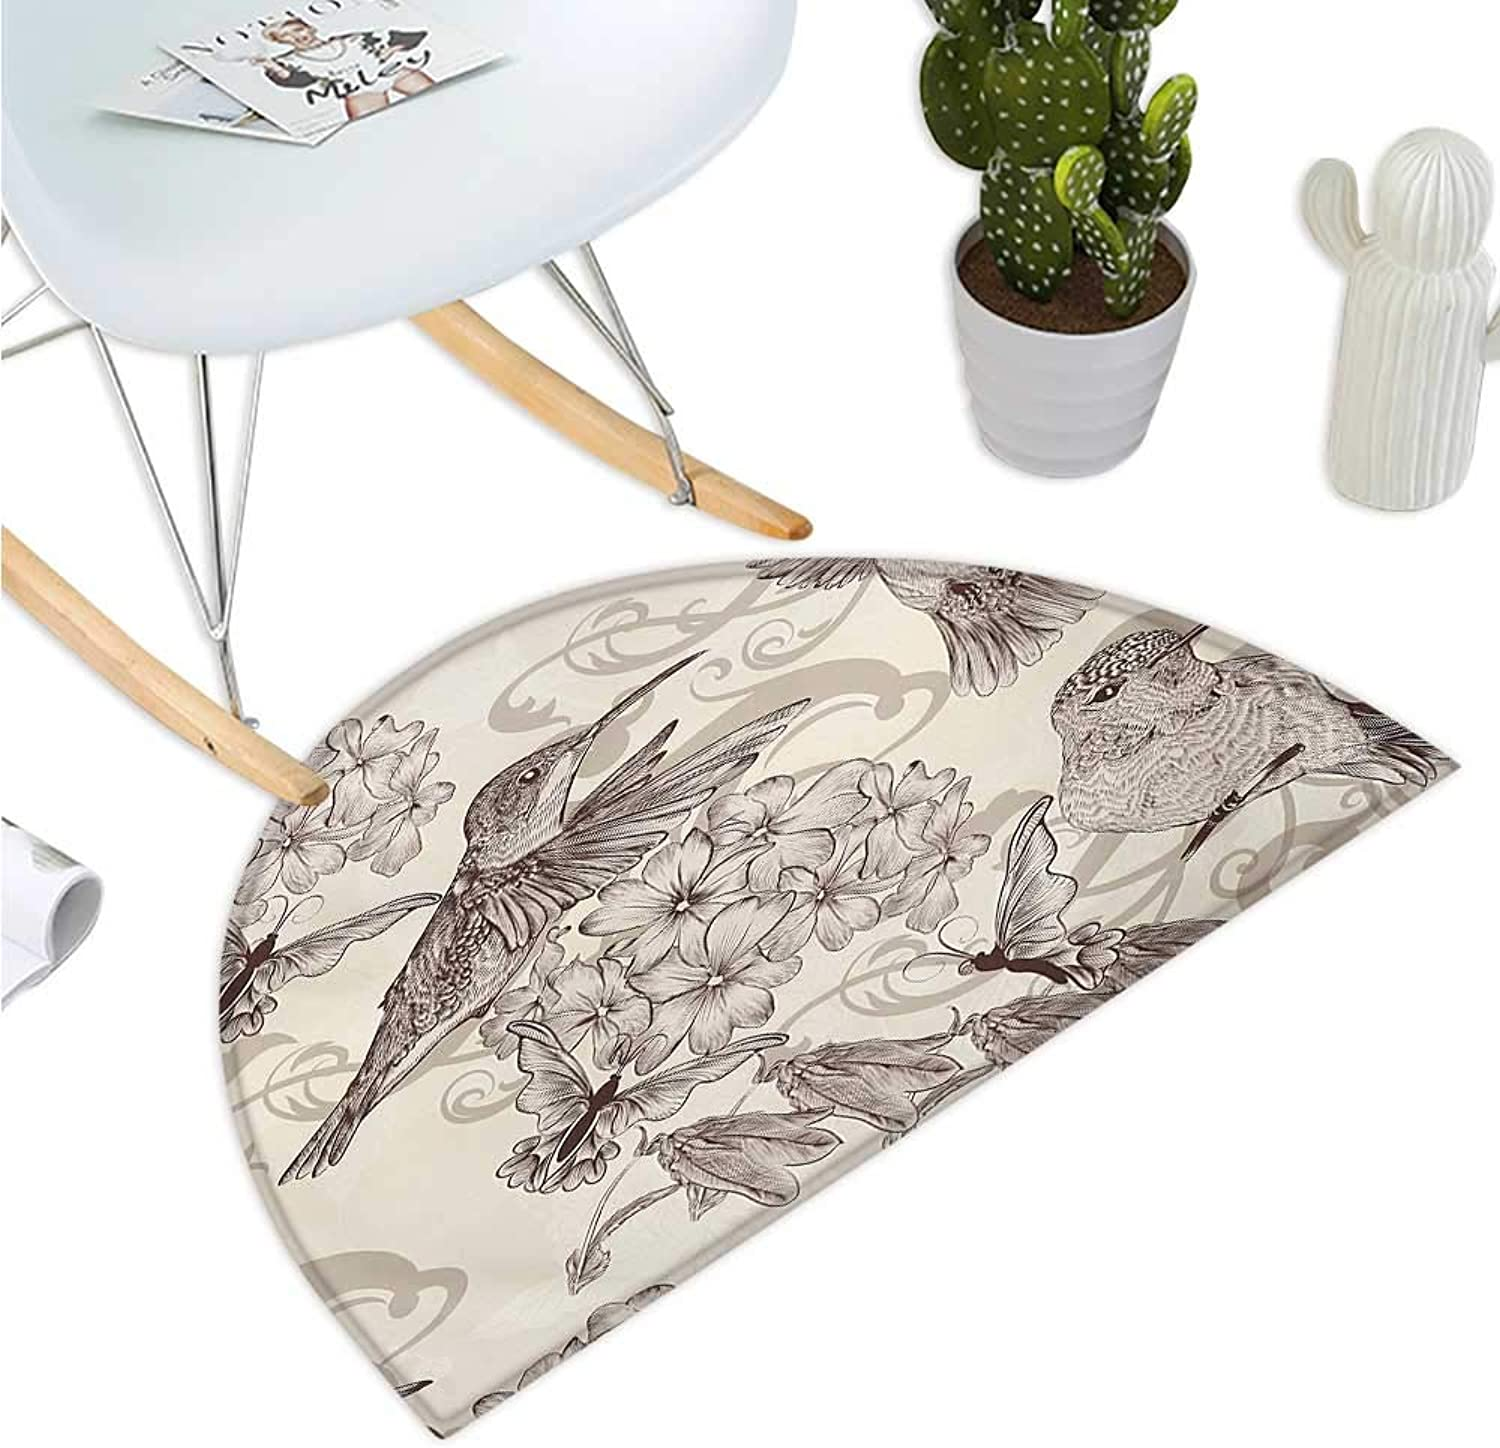 Hummingbirds Semicircular Cushion Birds and Flowers Monochromic Classical Design Nostalgia Ornate Festive Bathroom Mat H 51.1  xD 76.7  Cream Beige Brown